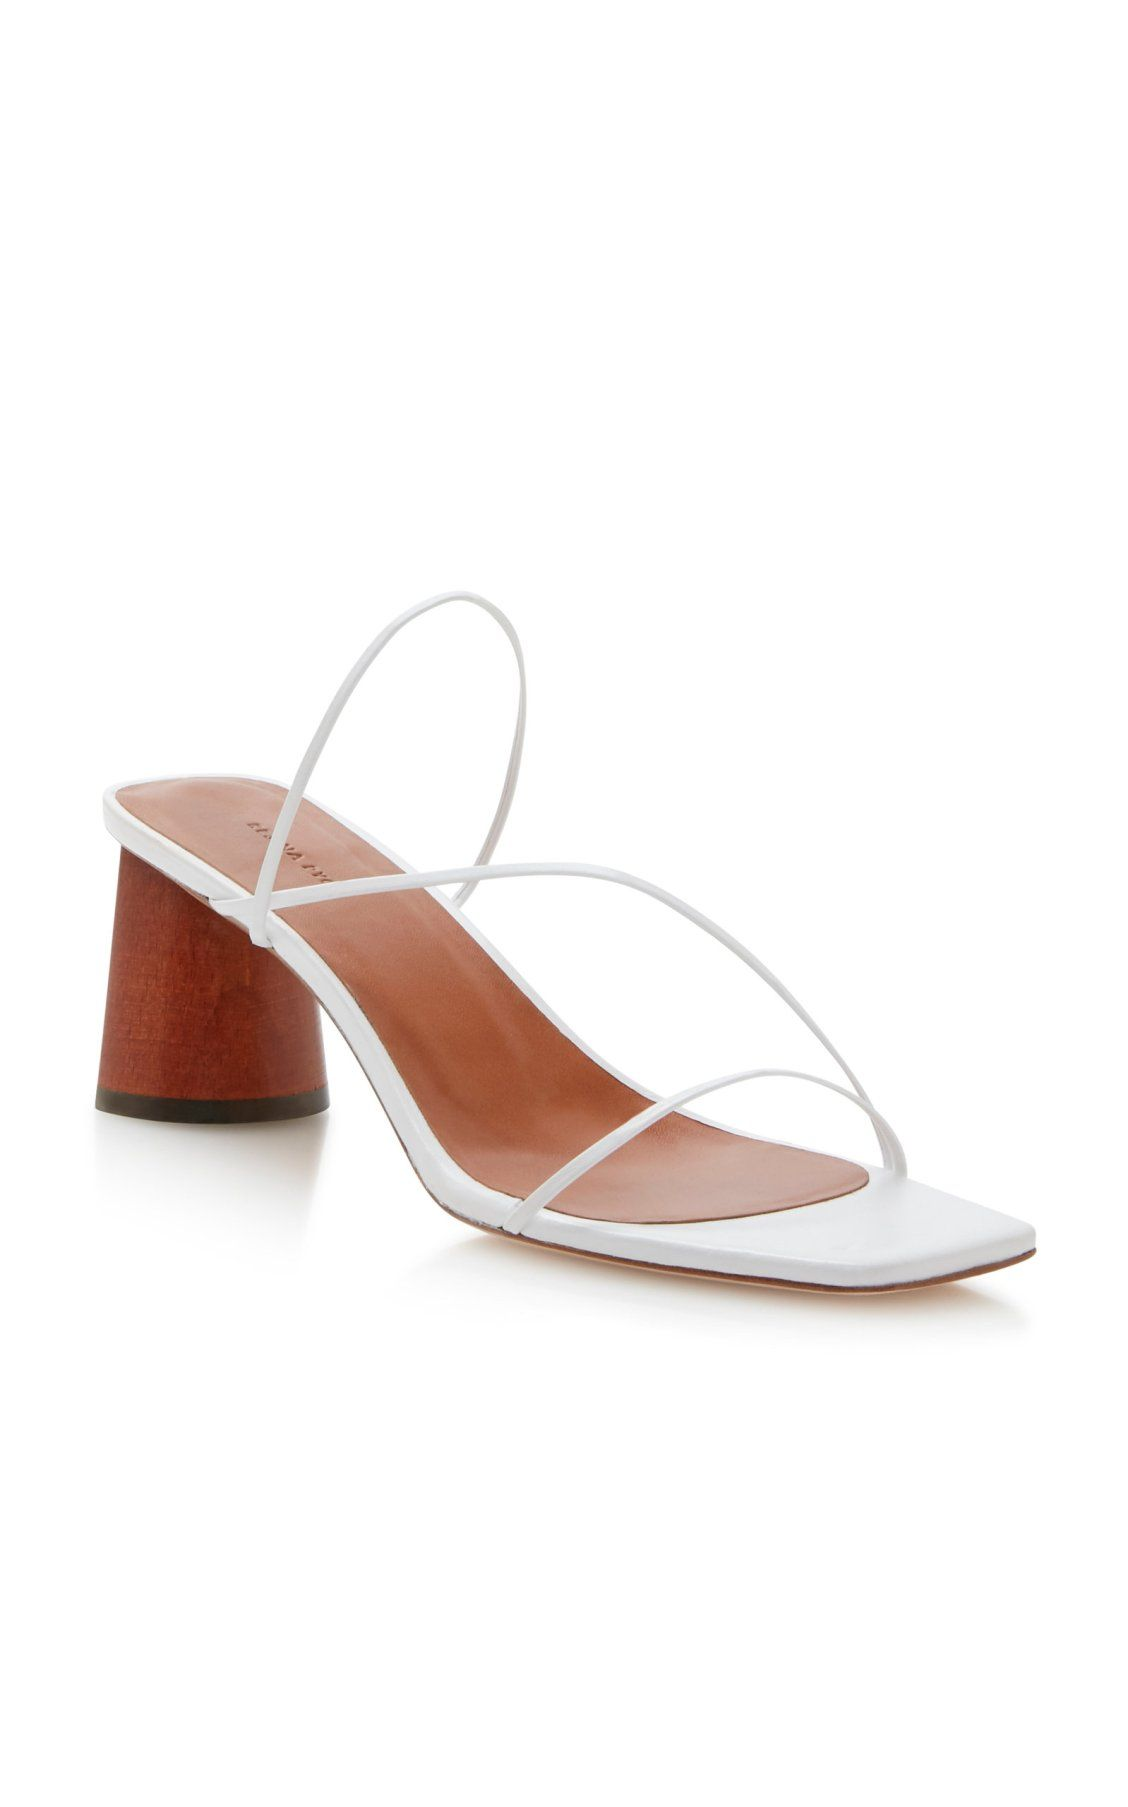 327a97a0e Harley Sandals by Rejina Pyo SS19